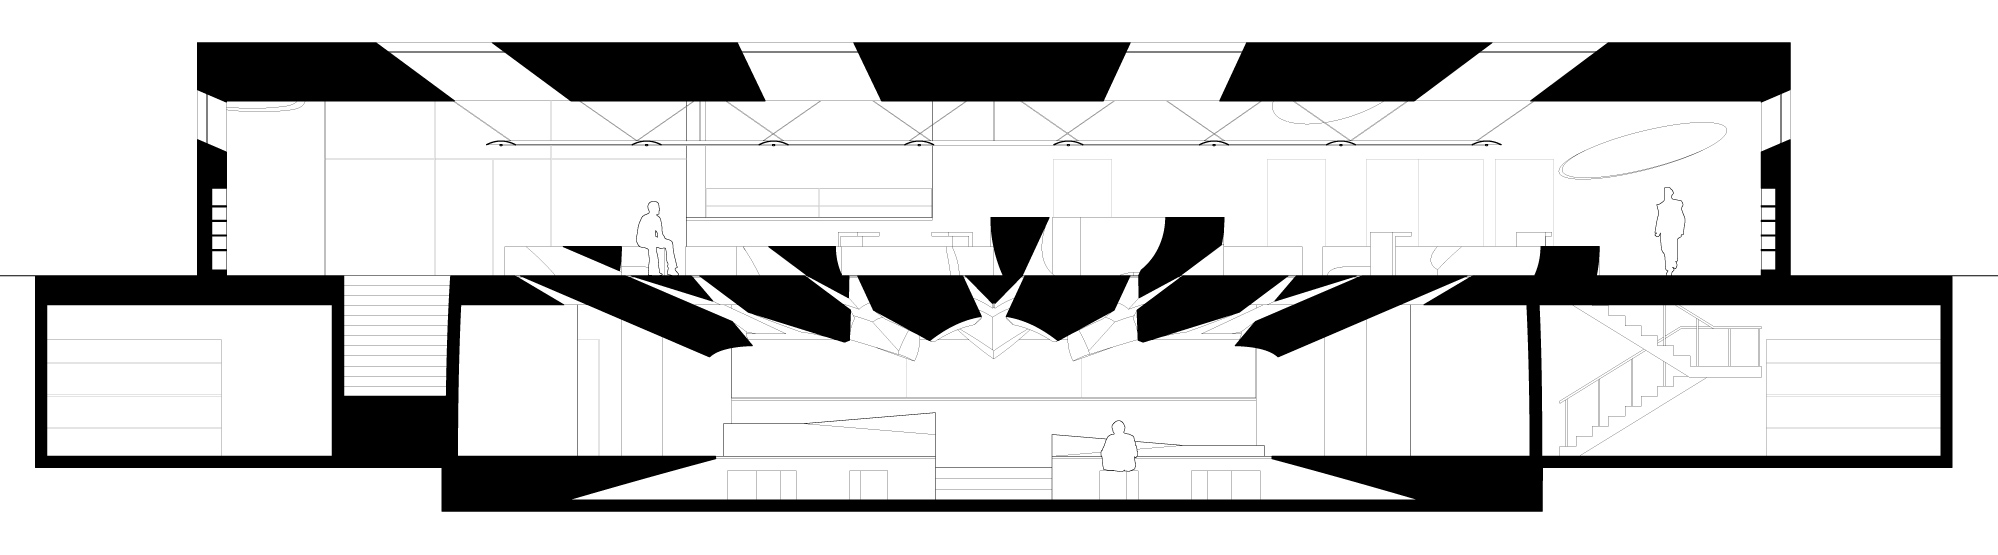 Drawing: Erioseto Hendranata <br /><br /> 42° borrows several motifs from the work of Louis Kahn. The material palette of the library imitates the materials of Kahn's Exeter Library: the walls are concrete, the floors and furniture are wood, and the featured spaces - at 42° the reading well - are paved in travertine marble. 42° also shares with much of Kahn's work a focus on primitive geometric figures like the circle. Most notably the circle is a prominent figure in Kahn's House of Parliament in Bangladesh as well as in the Exeter Library. Finally, while the methods employed differ, the aim of collecting, distributing, and displaying sunlight is a central theme in both 42° and in Kahn's work. <br /><br /> The drawn representation continues the relationship by imitating Kahn's typical drawing style. The drawings are rendered with black poche, clean lineweights, and patterning which describes surface materials.